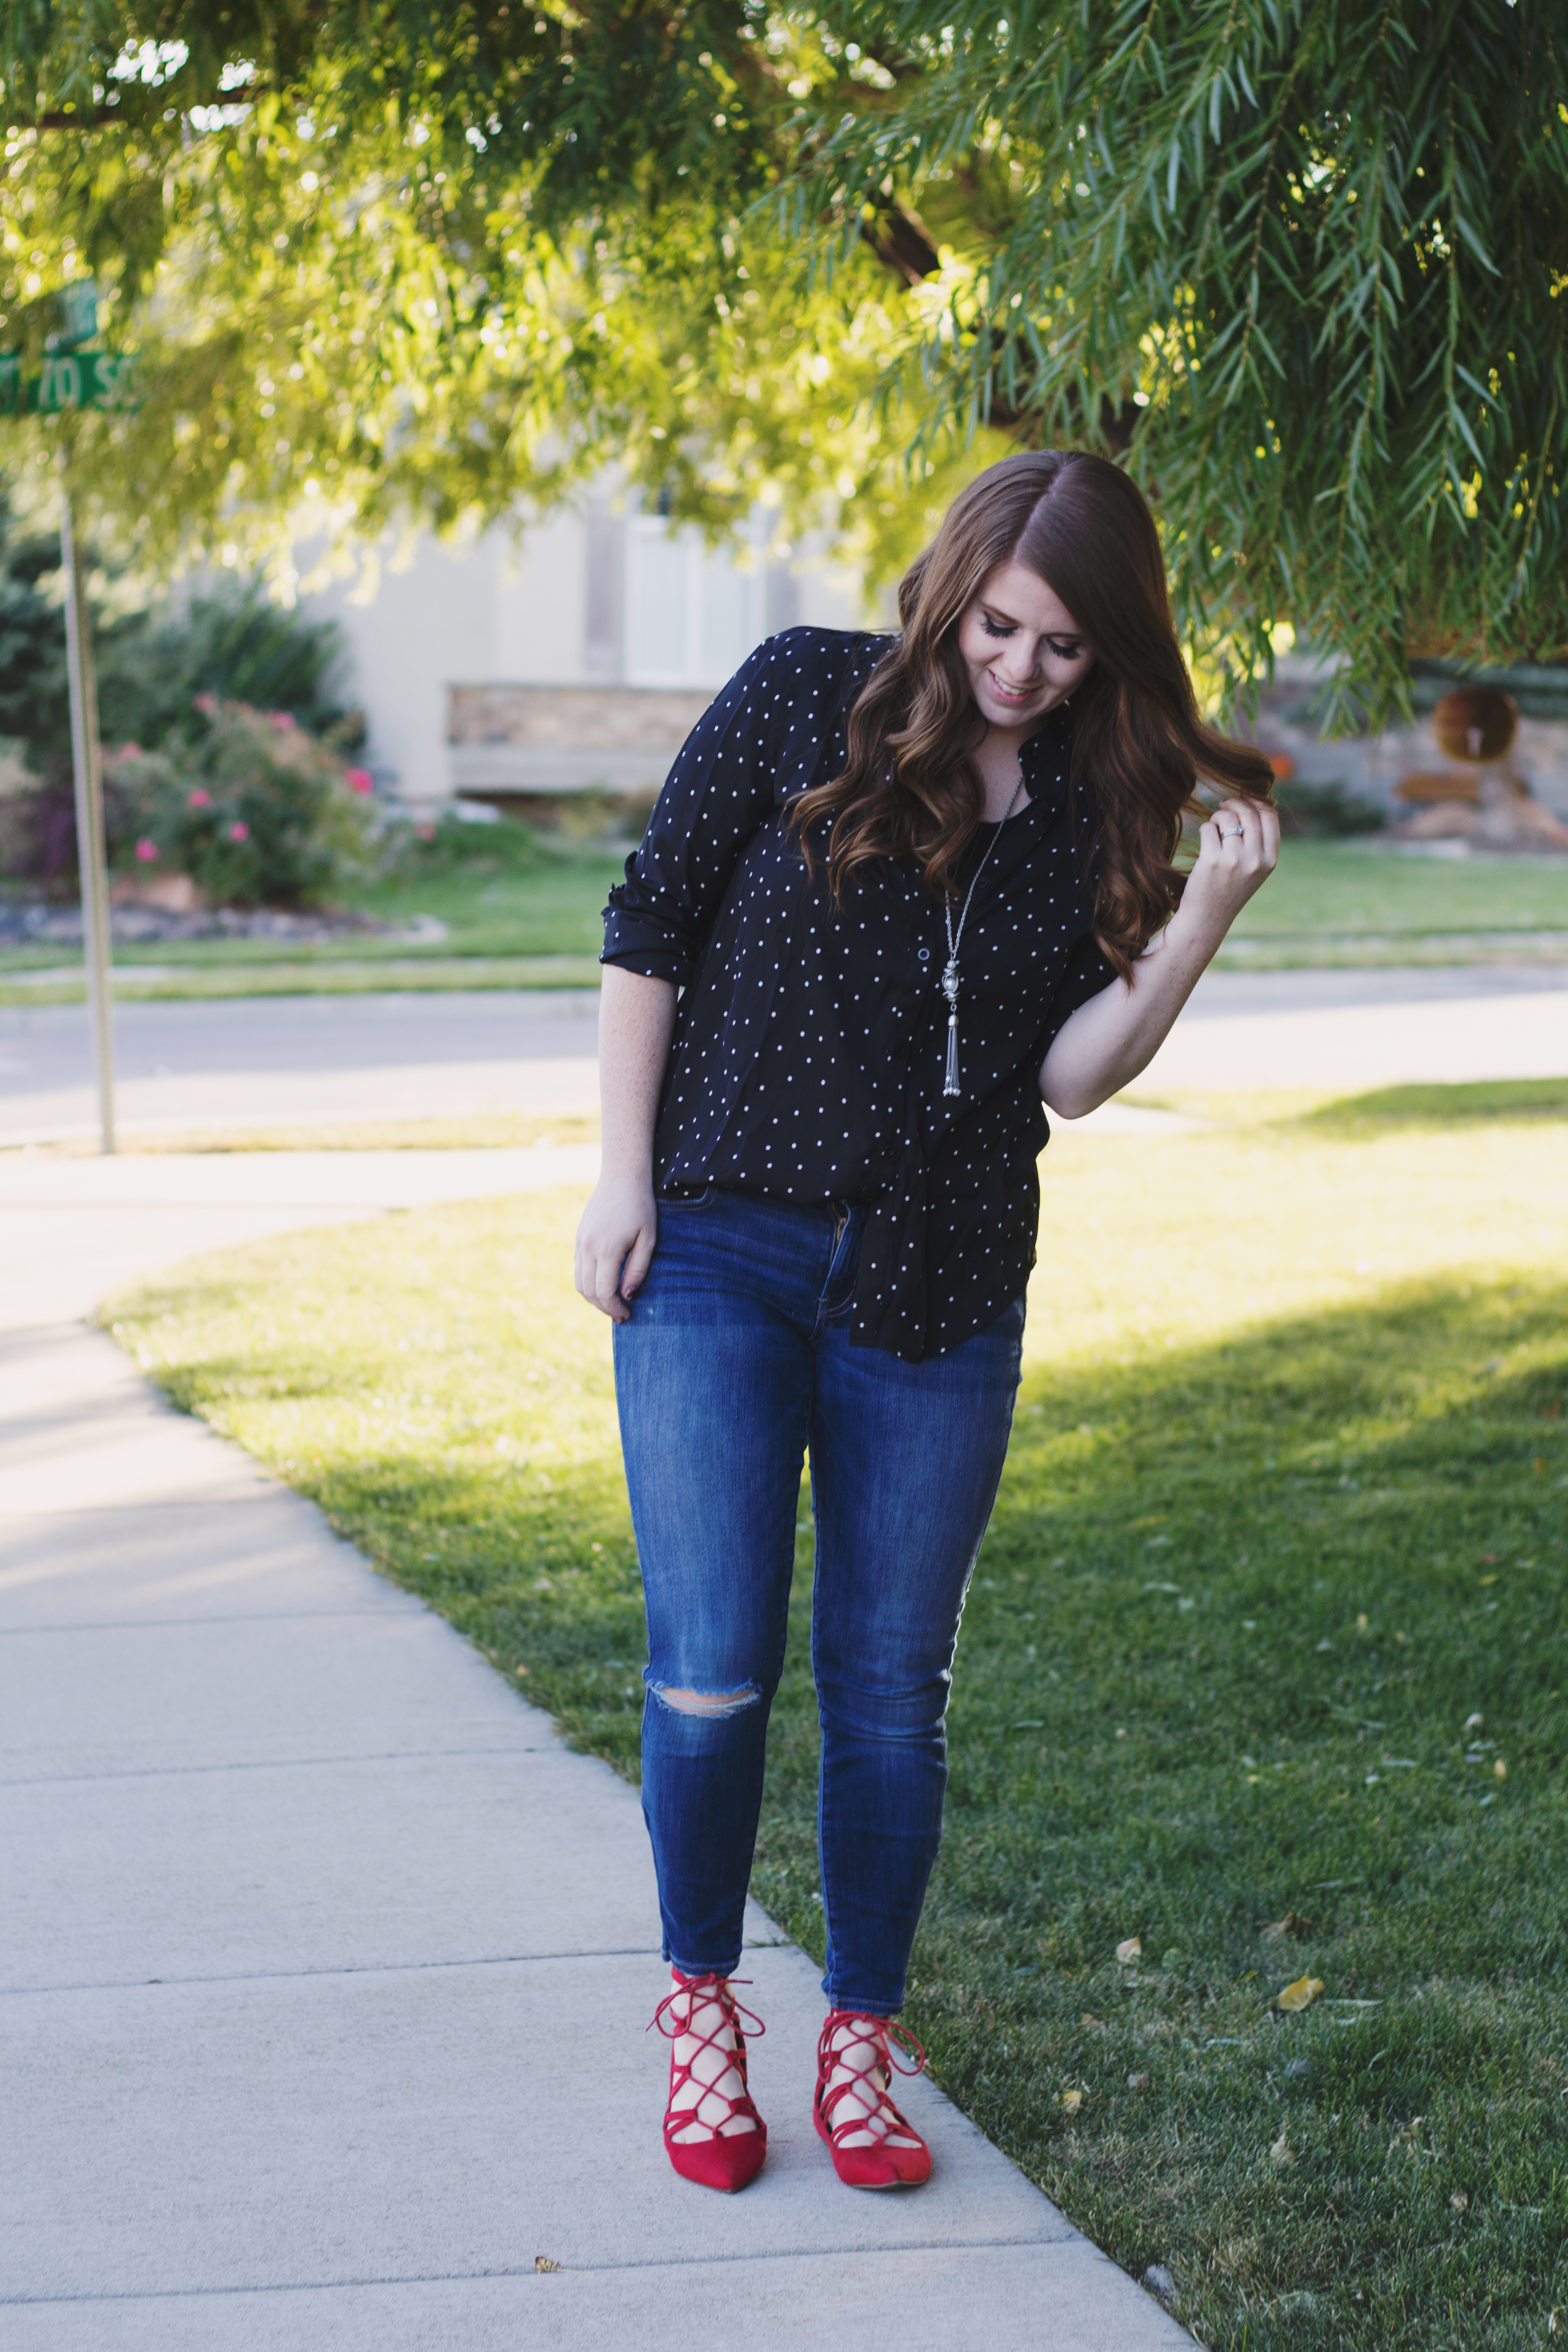 The One where I wear Polka Dots graphic